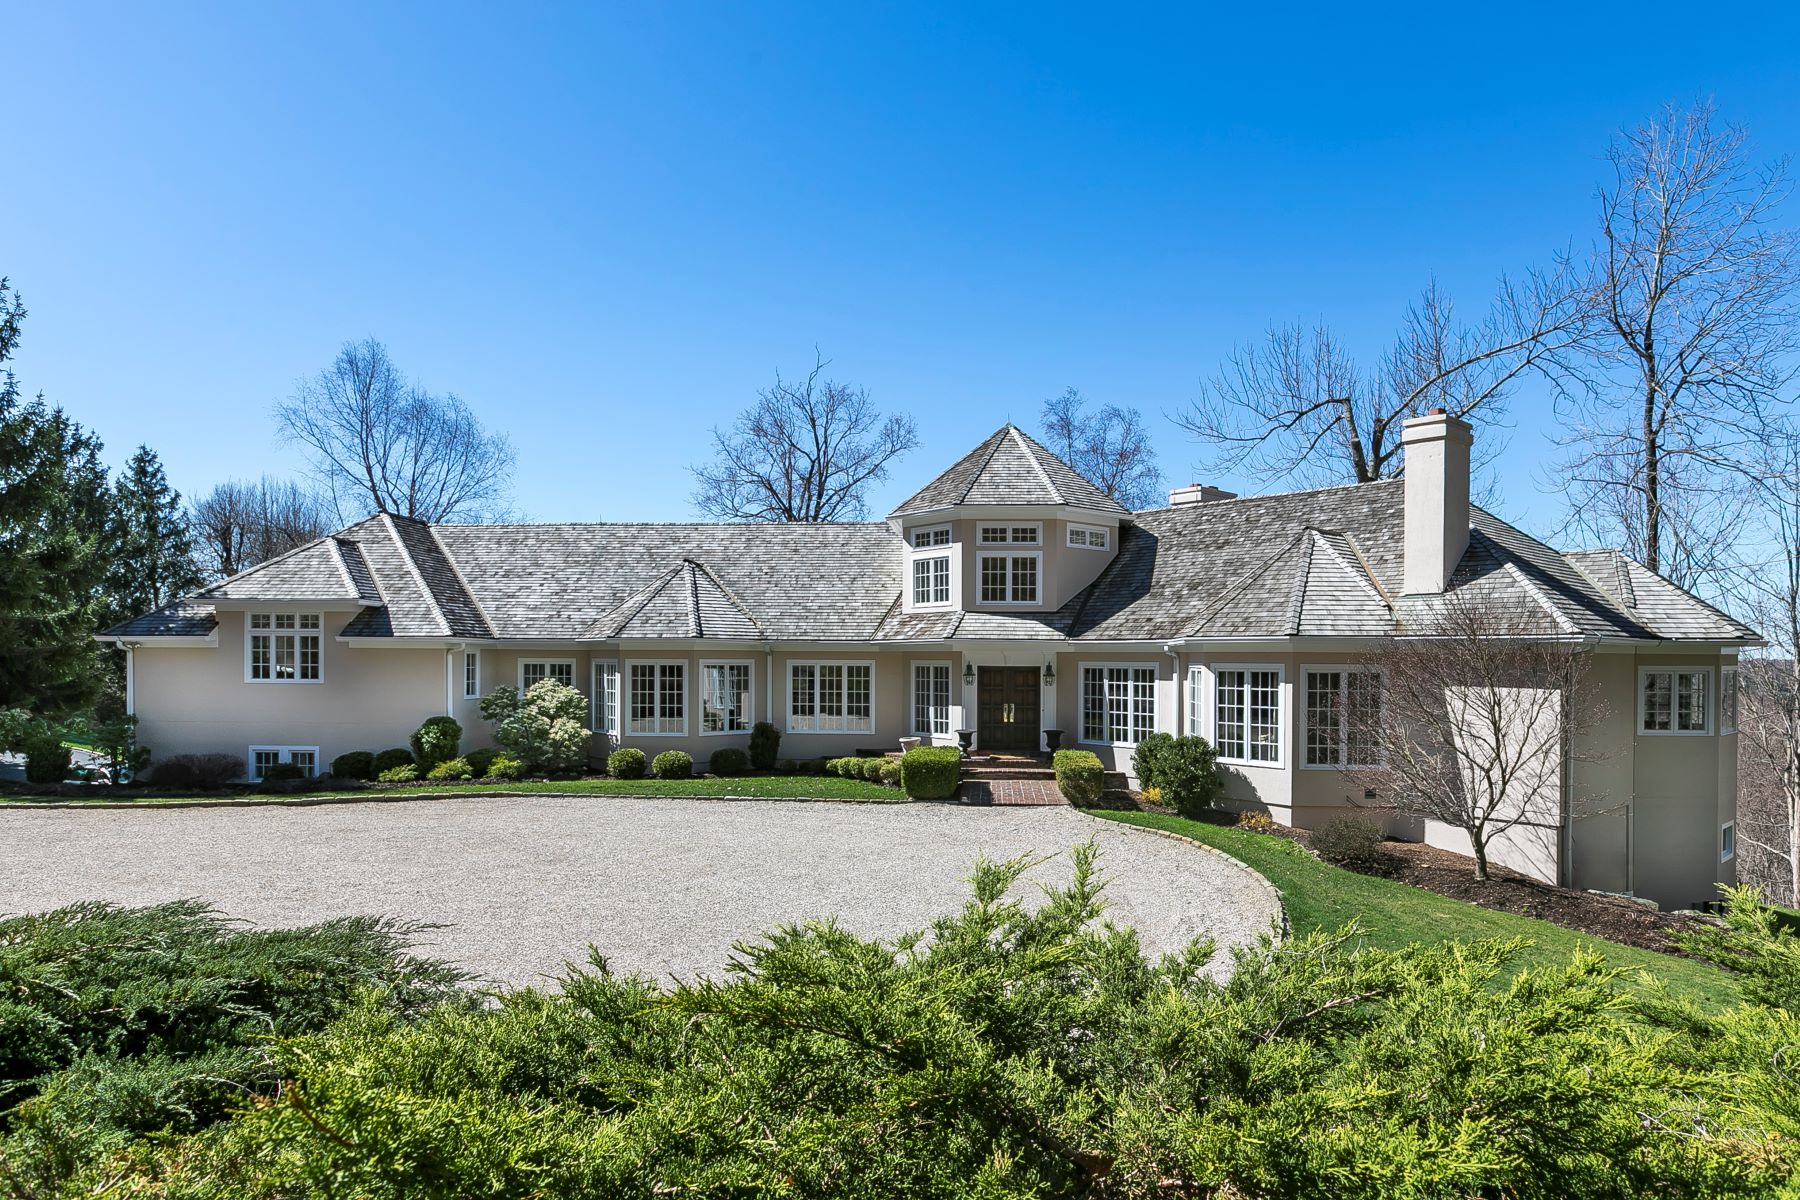 single family homes voor Verkoop op Designer Home with Spectacular Views 154 Oscaleta Road, Ridgefield, Connecticut 06877 Verenigde Staten